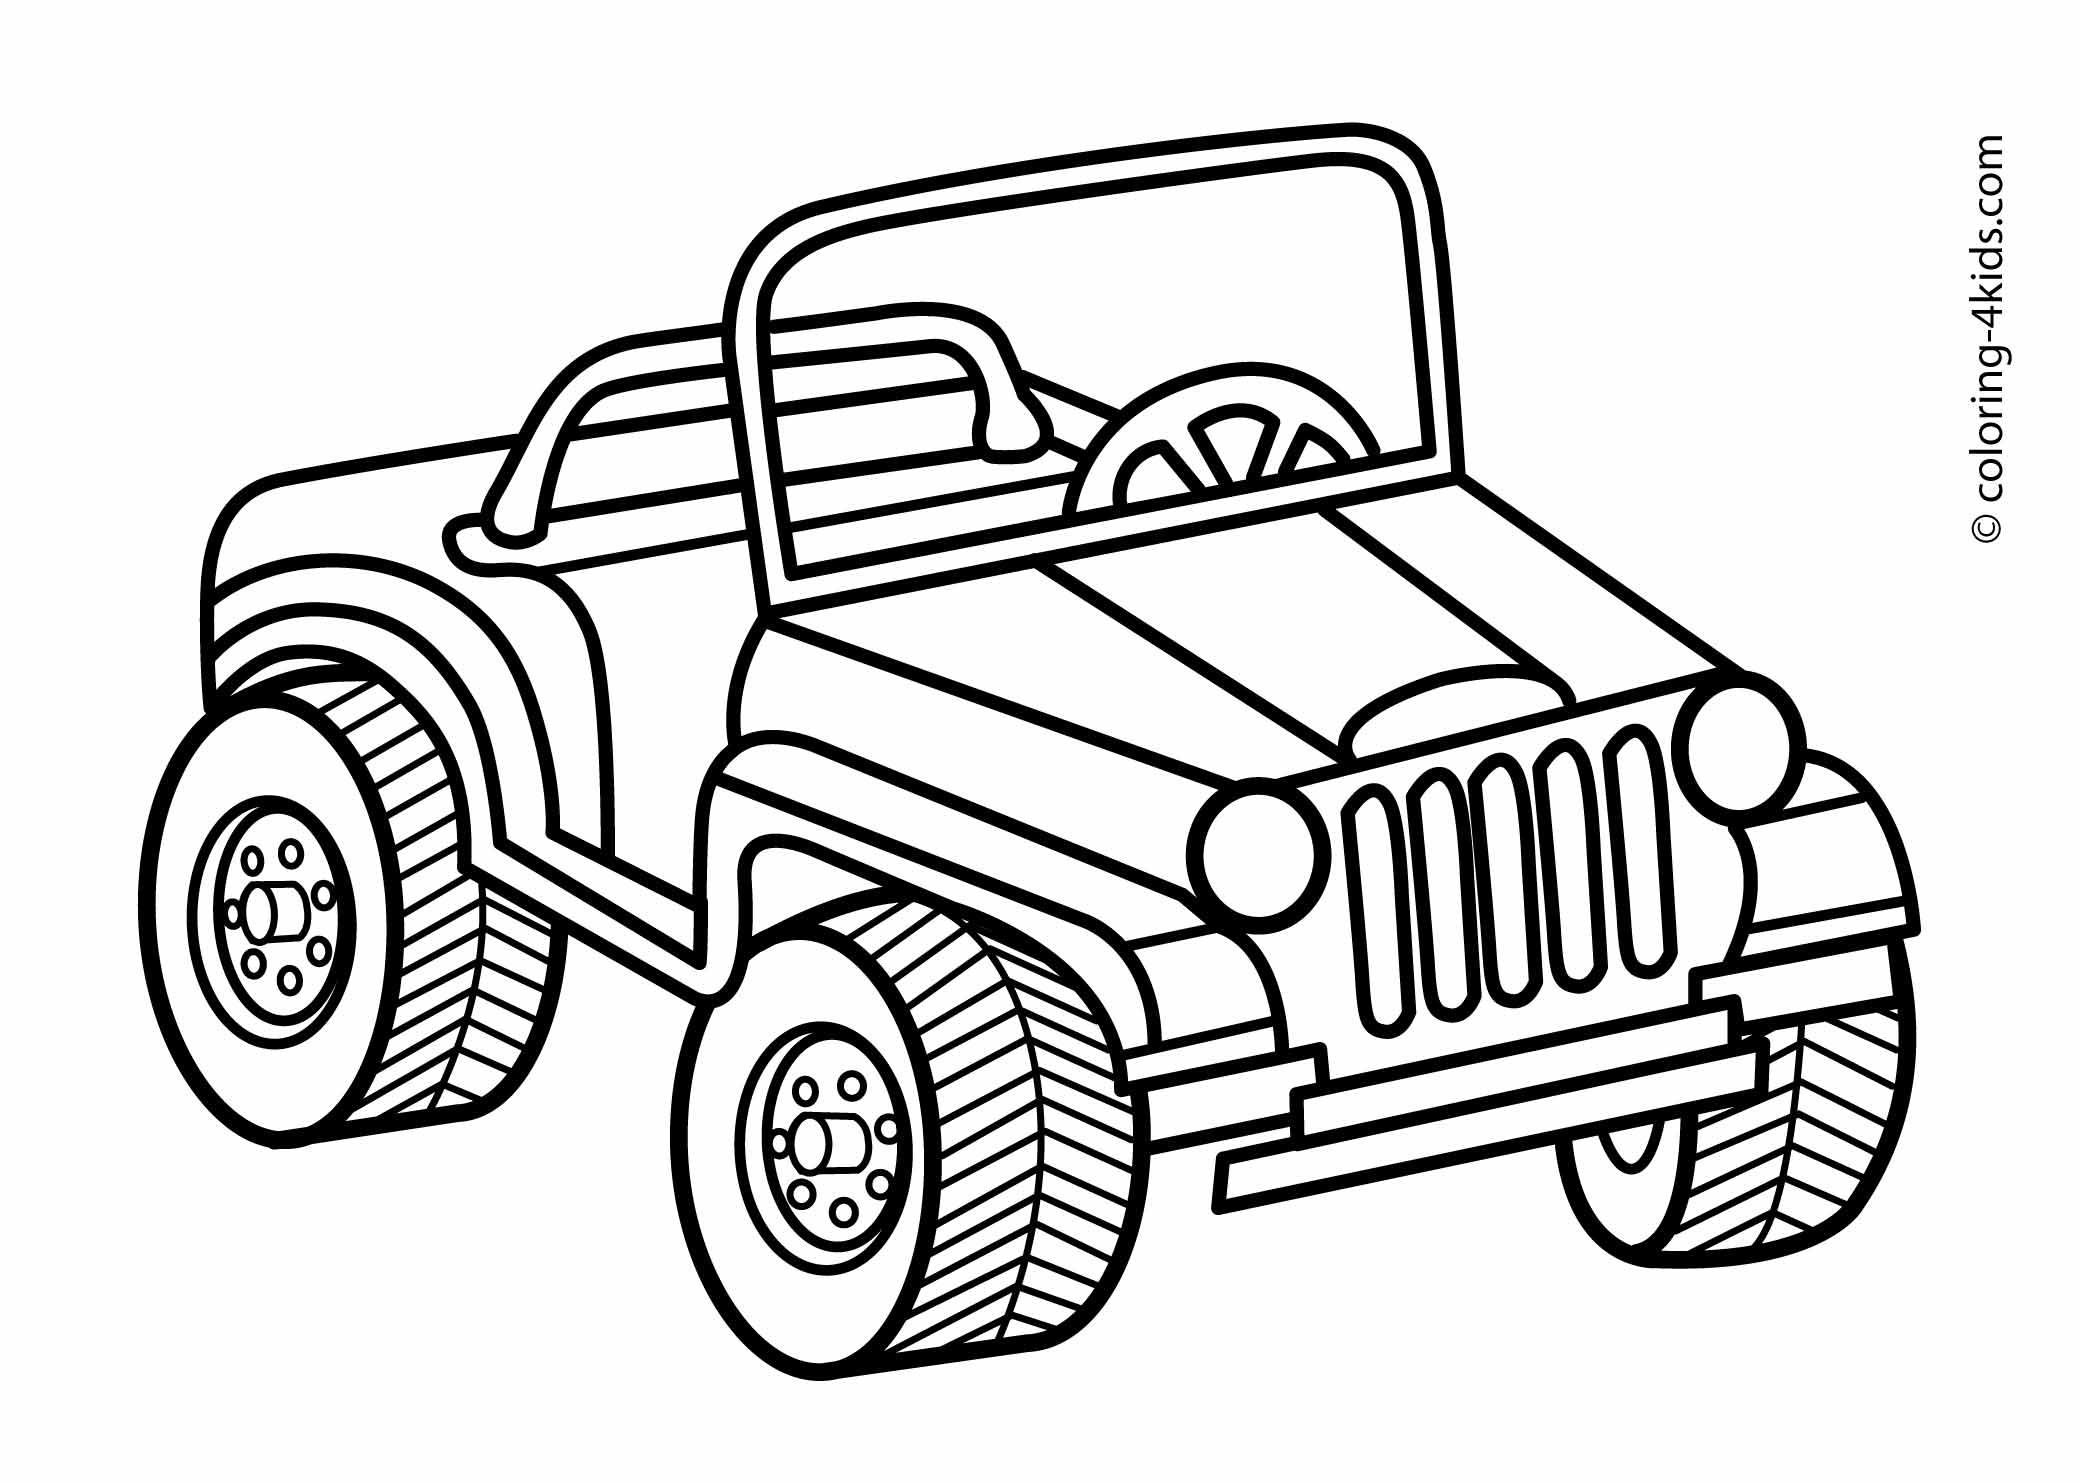 Jeep Transportation Coloring Pages For Kids Printable Monster Truck Coloring Pages Cars Coloring Pages Safari Jeep